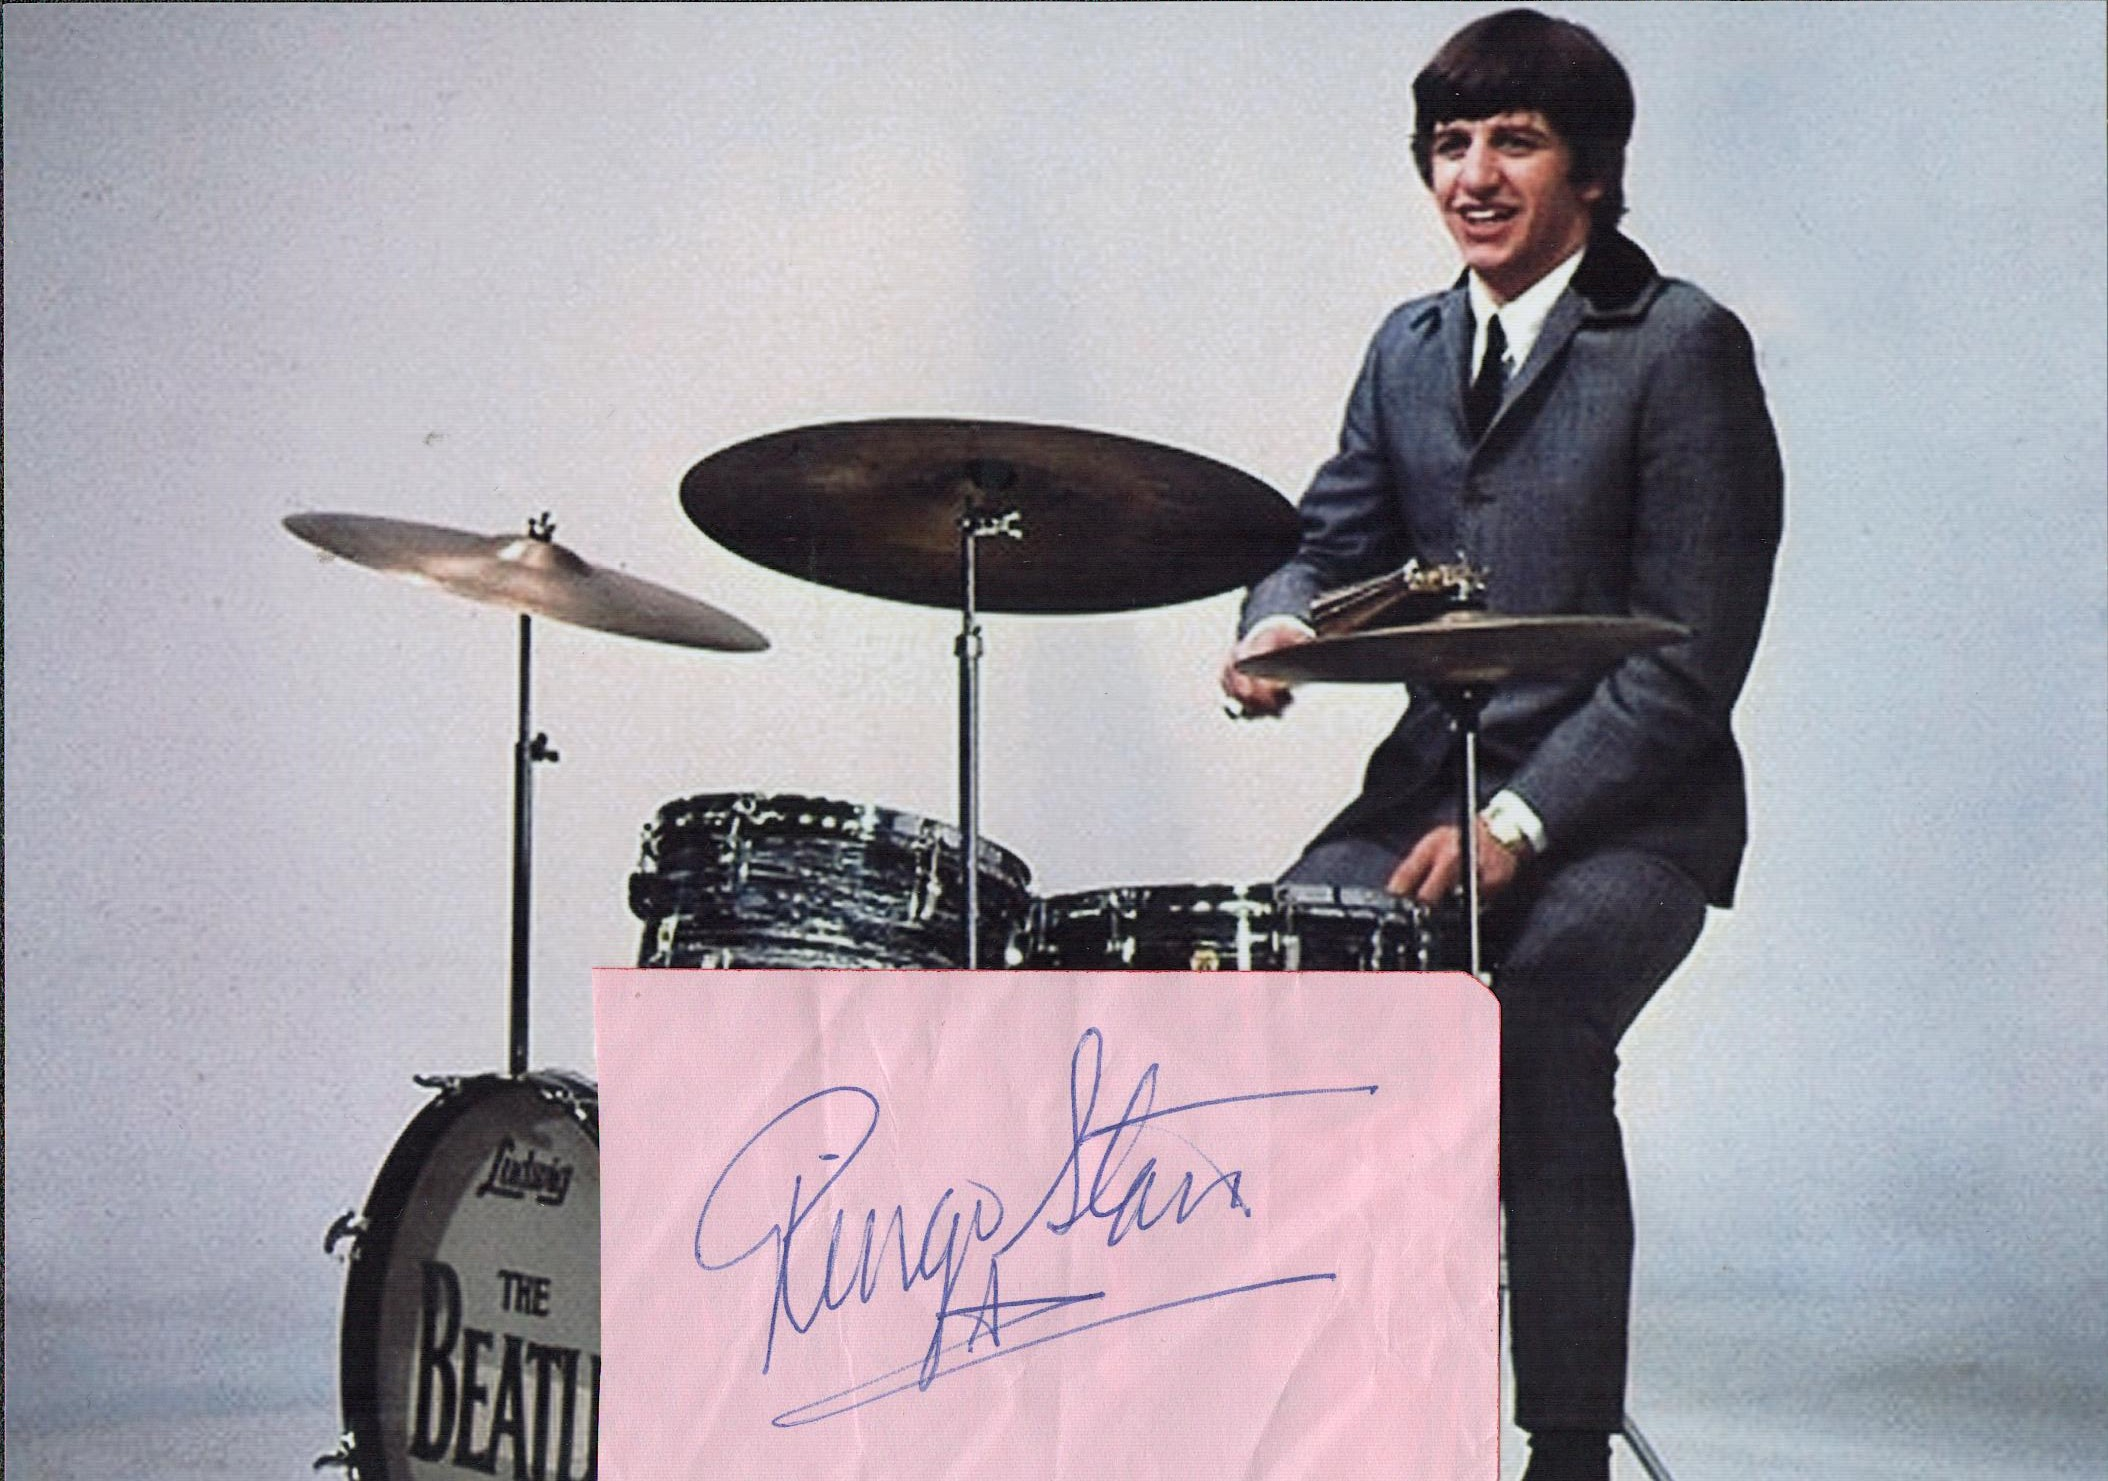 RINGO STARR The Beatles Drummer signed vintage Album Page with Beatles Photo. Good condition. All